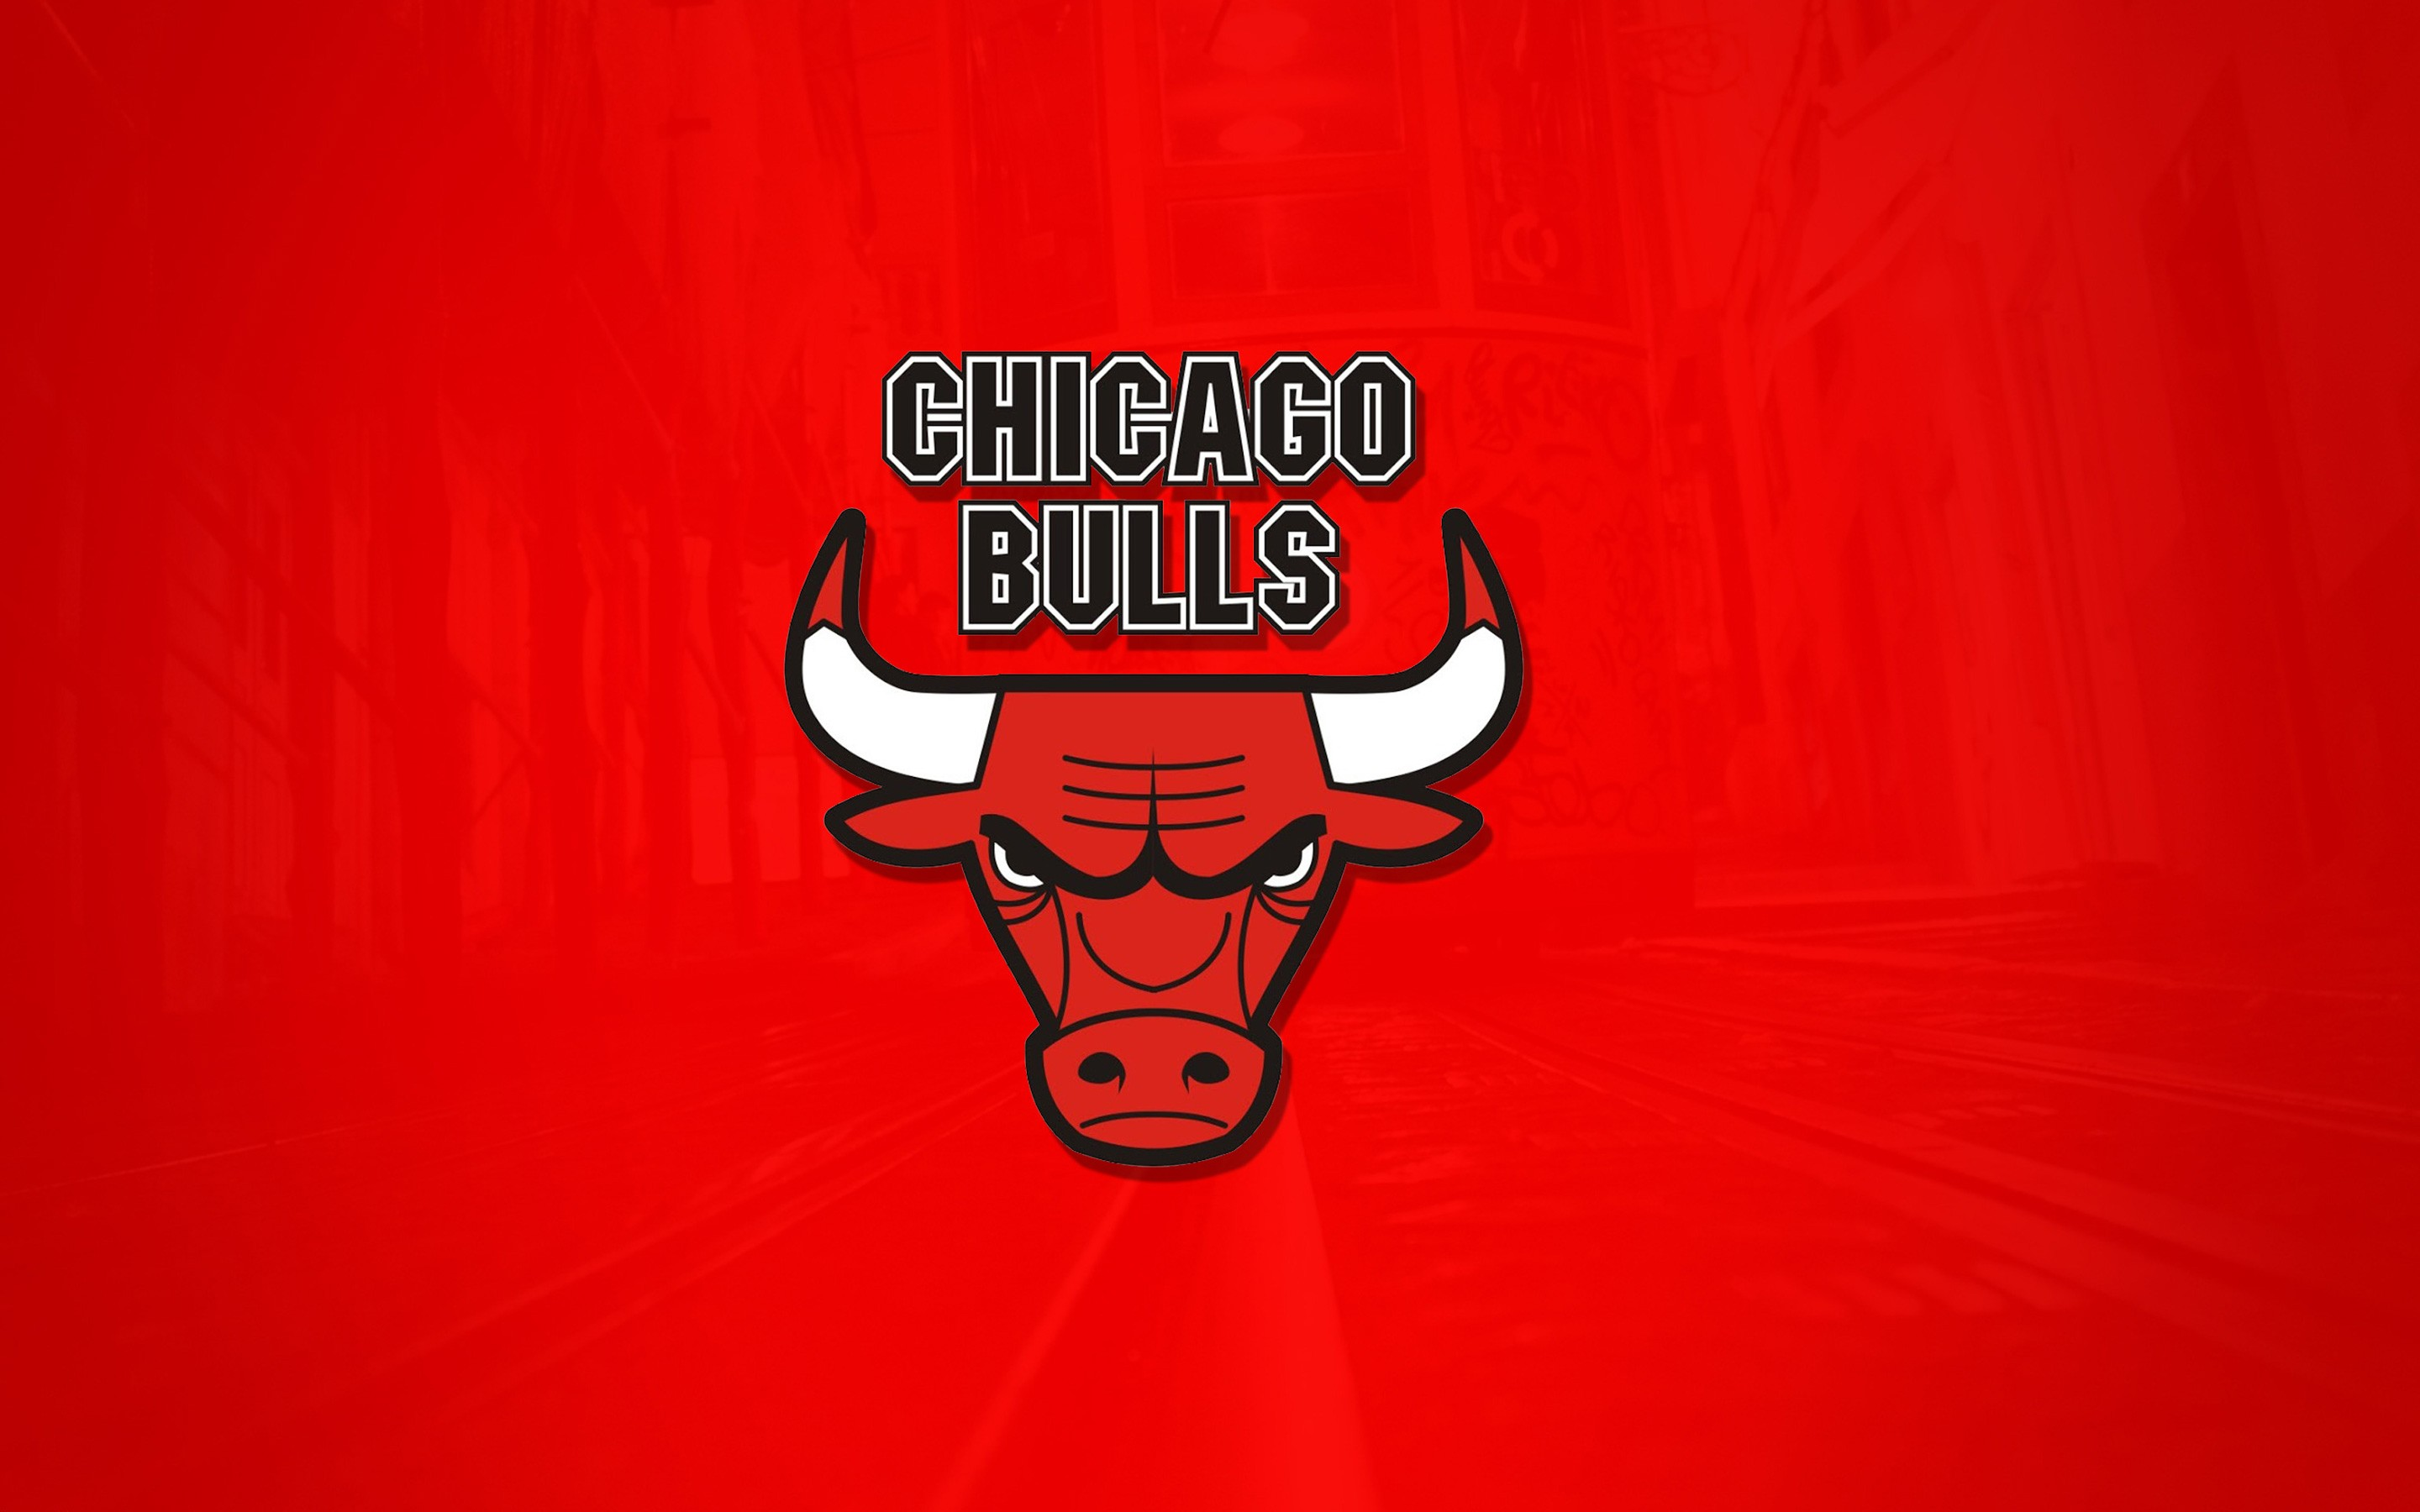 Chicago Bulls Wallpaper Iphone 6 The Chicago Bulls Wallpapers Hd Wallpapers Id 17704